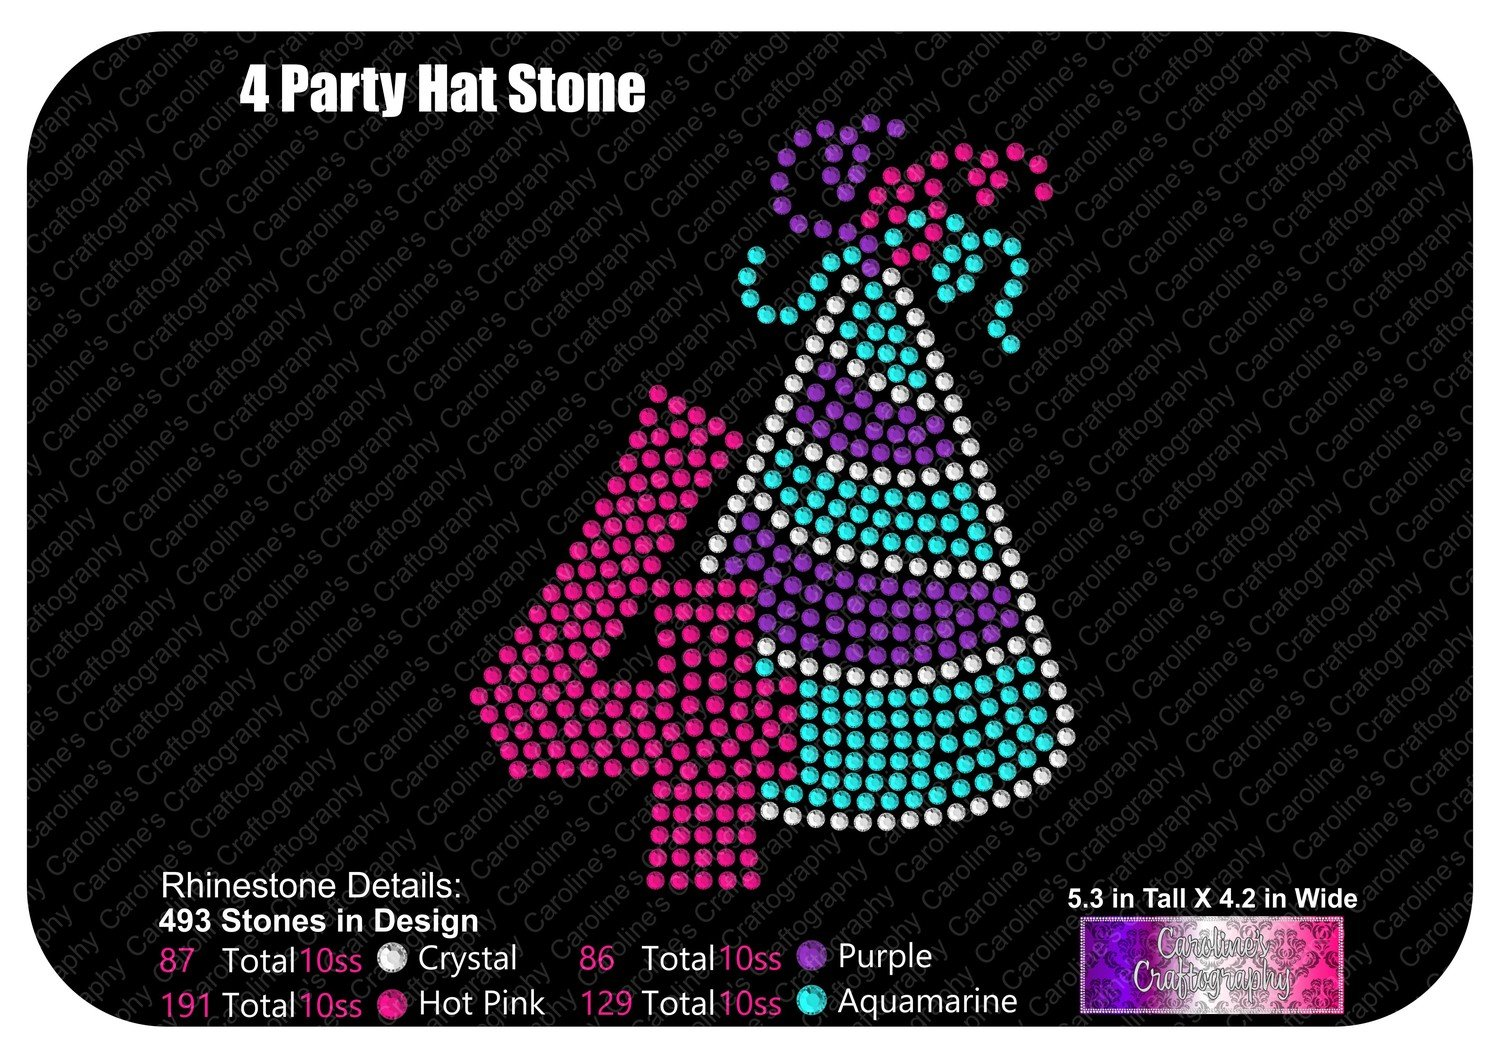 Party Hat Number 4 Stone